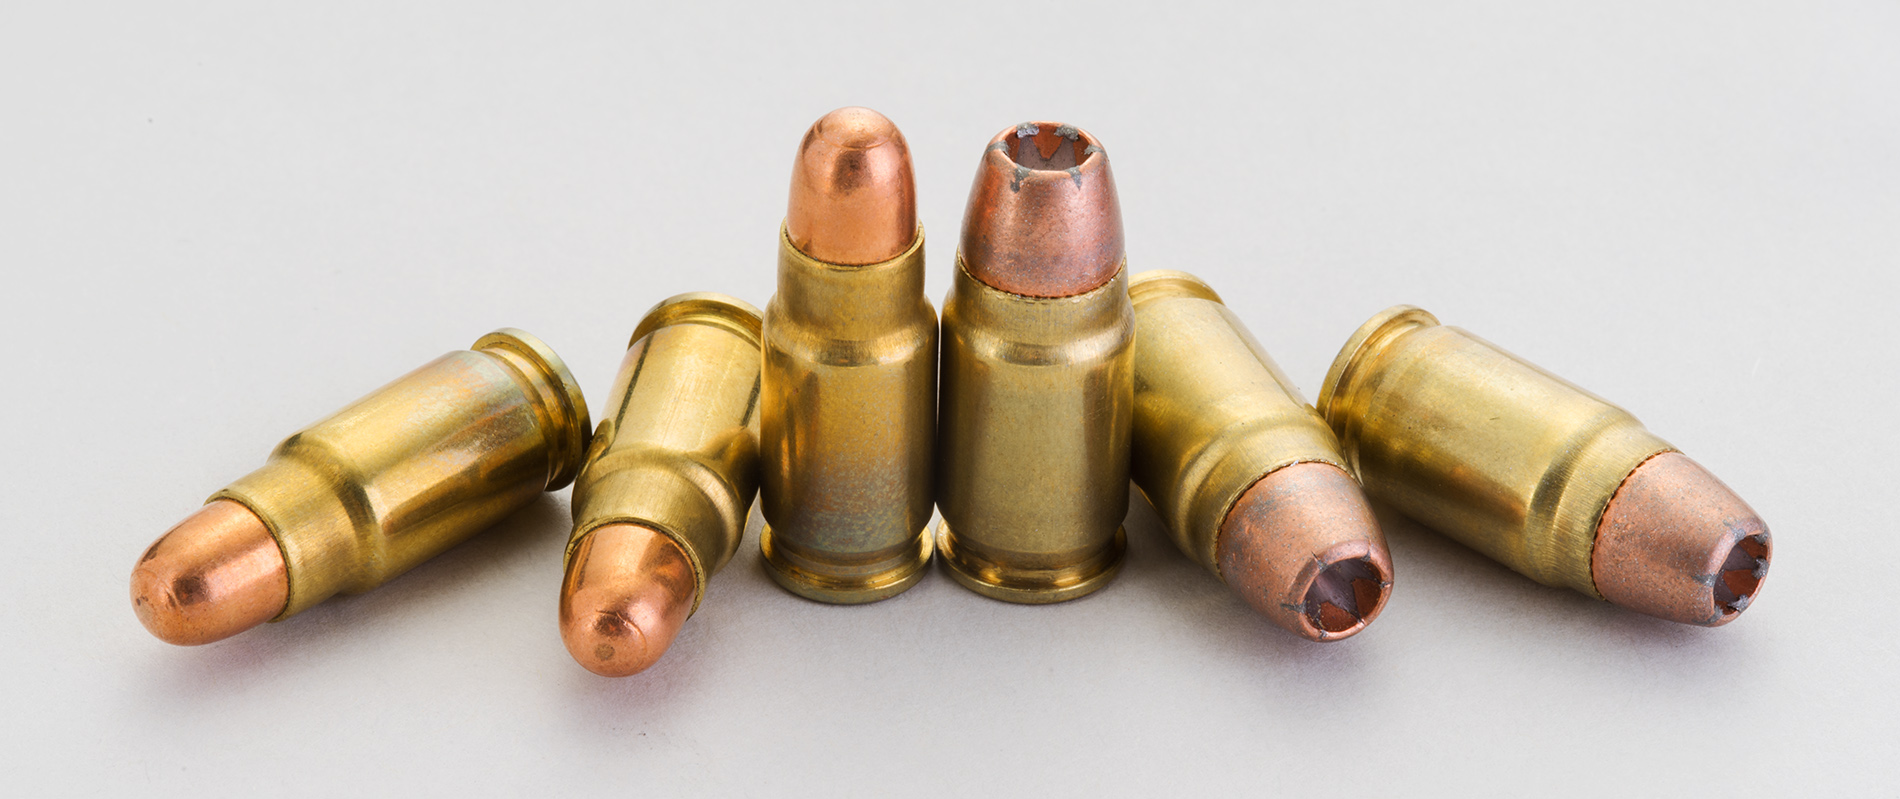 Lawmakers Want to Track Every Bullet Sold in Illinois